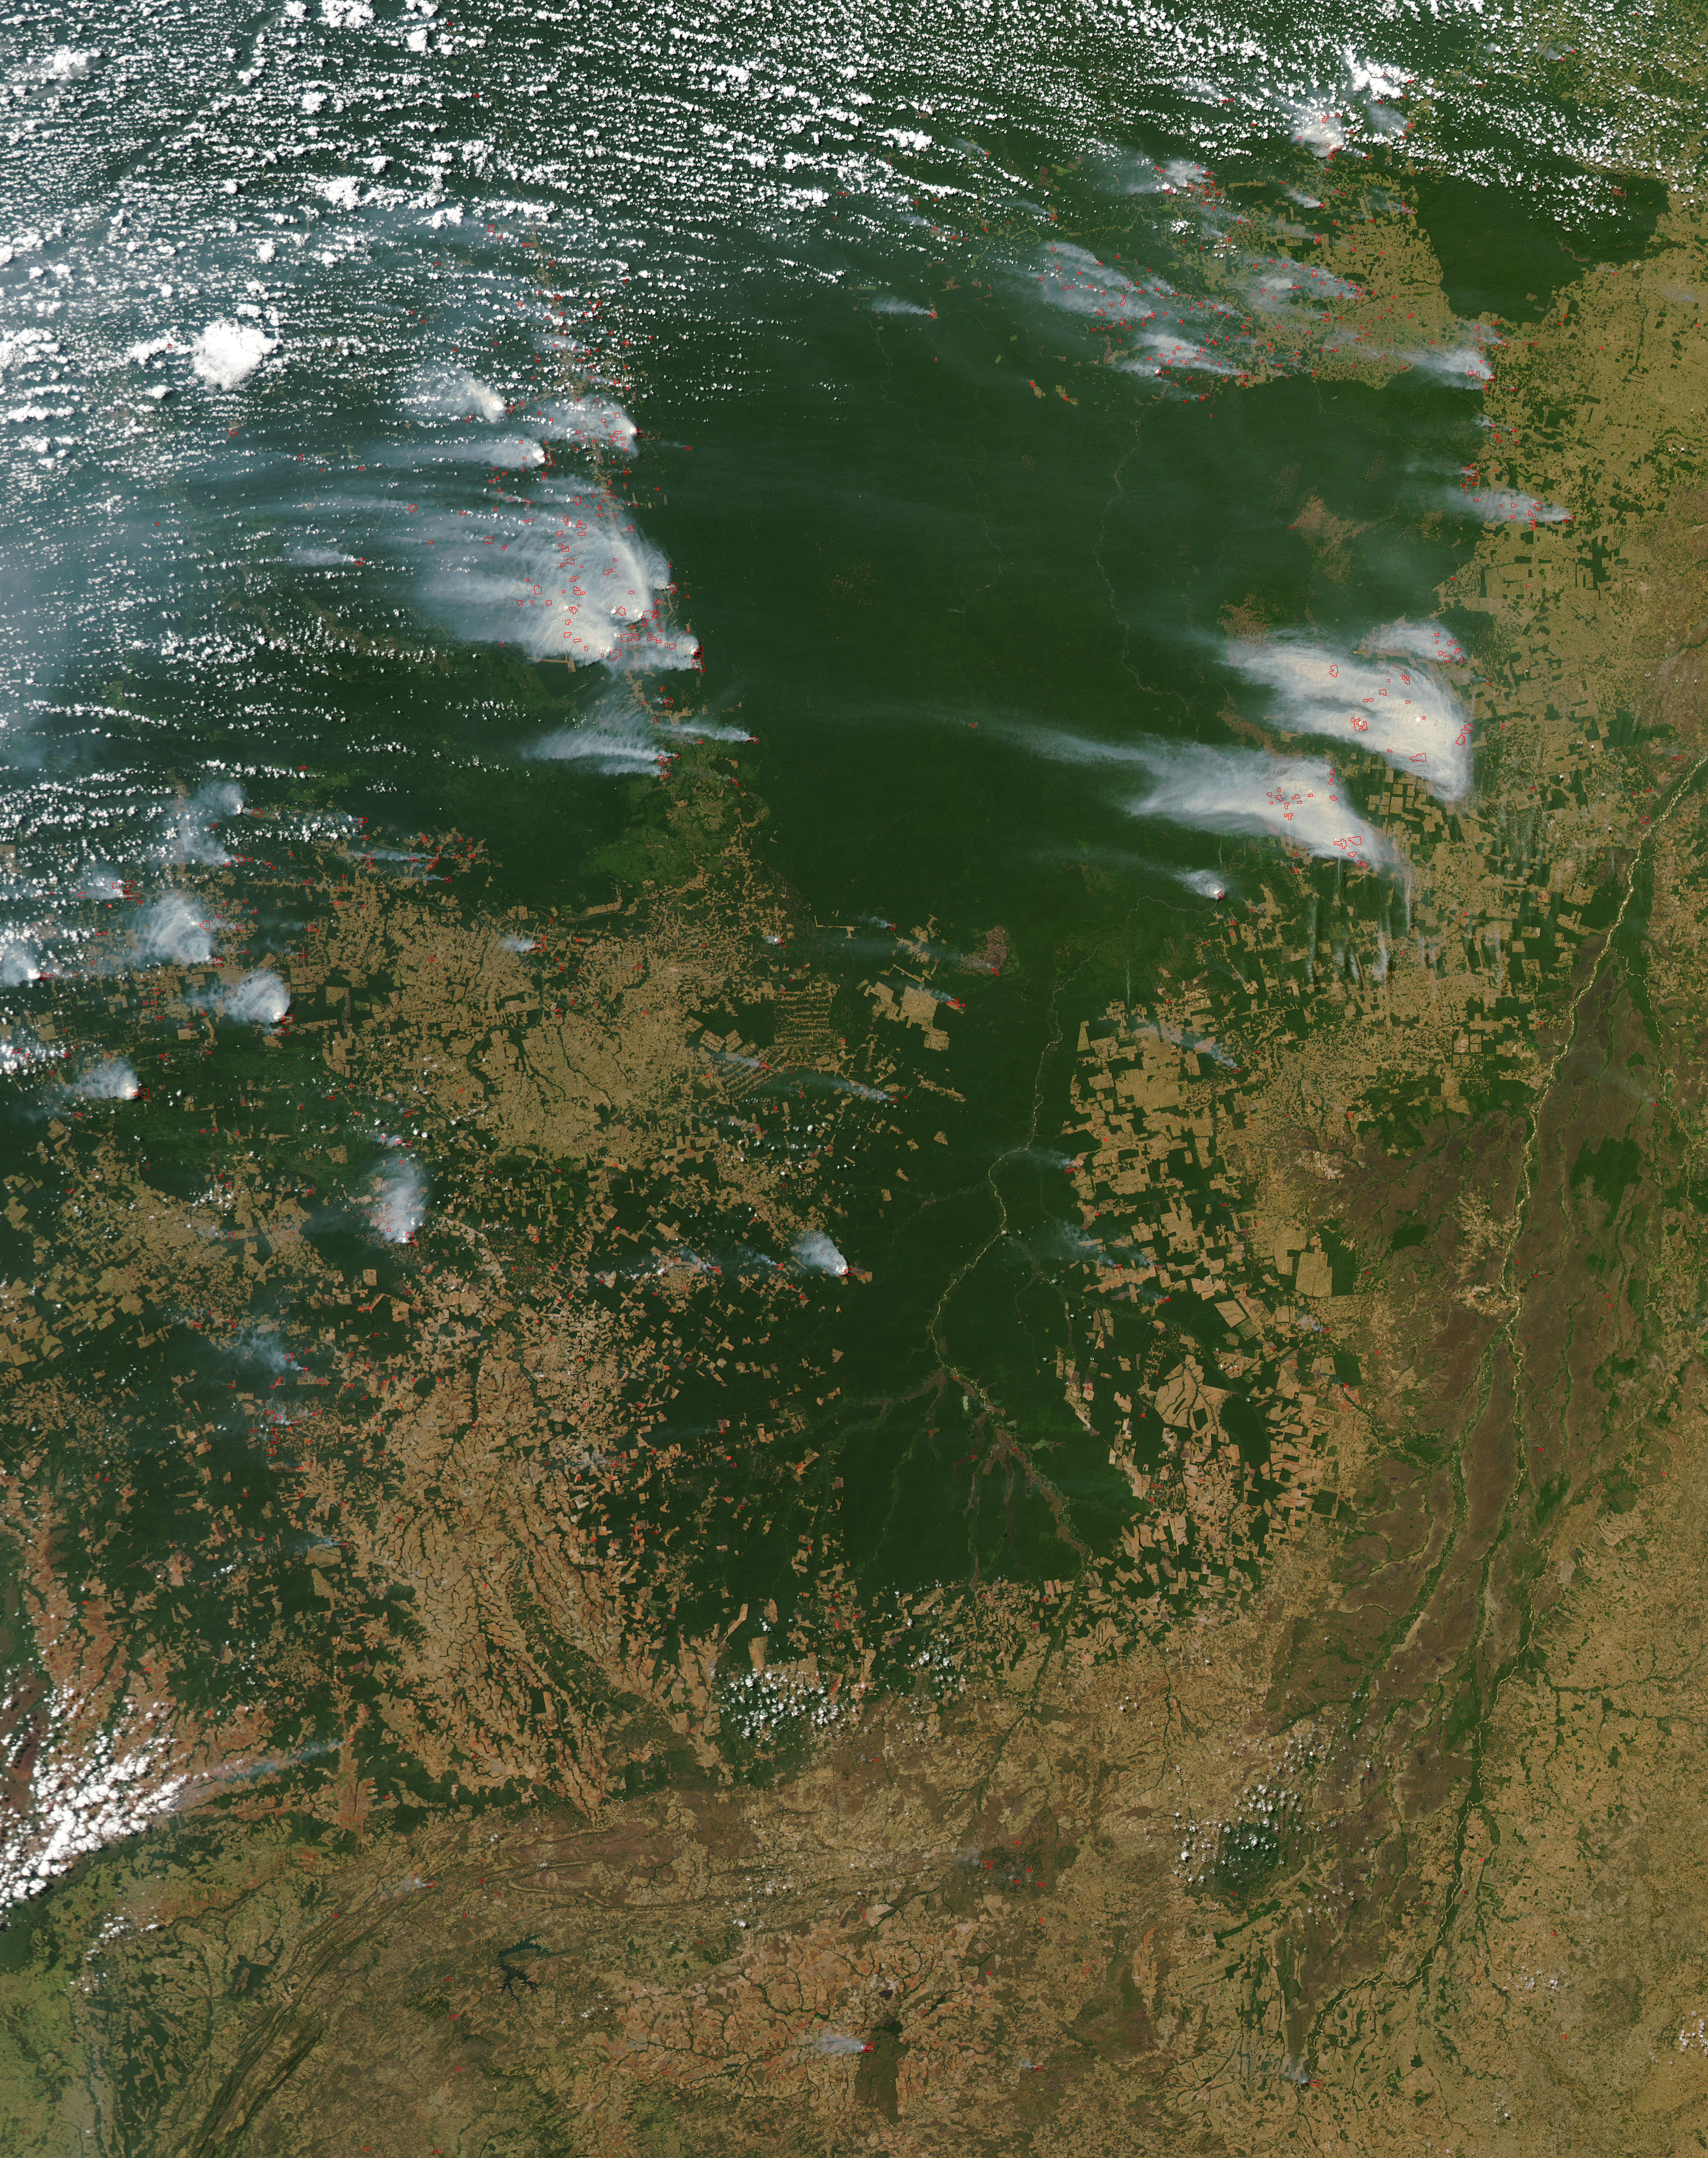 Fires and smoke across Mato Grosso, Brazil